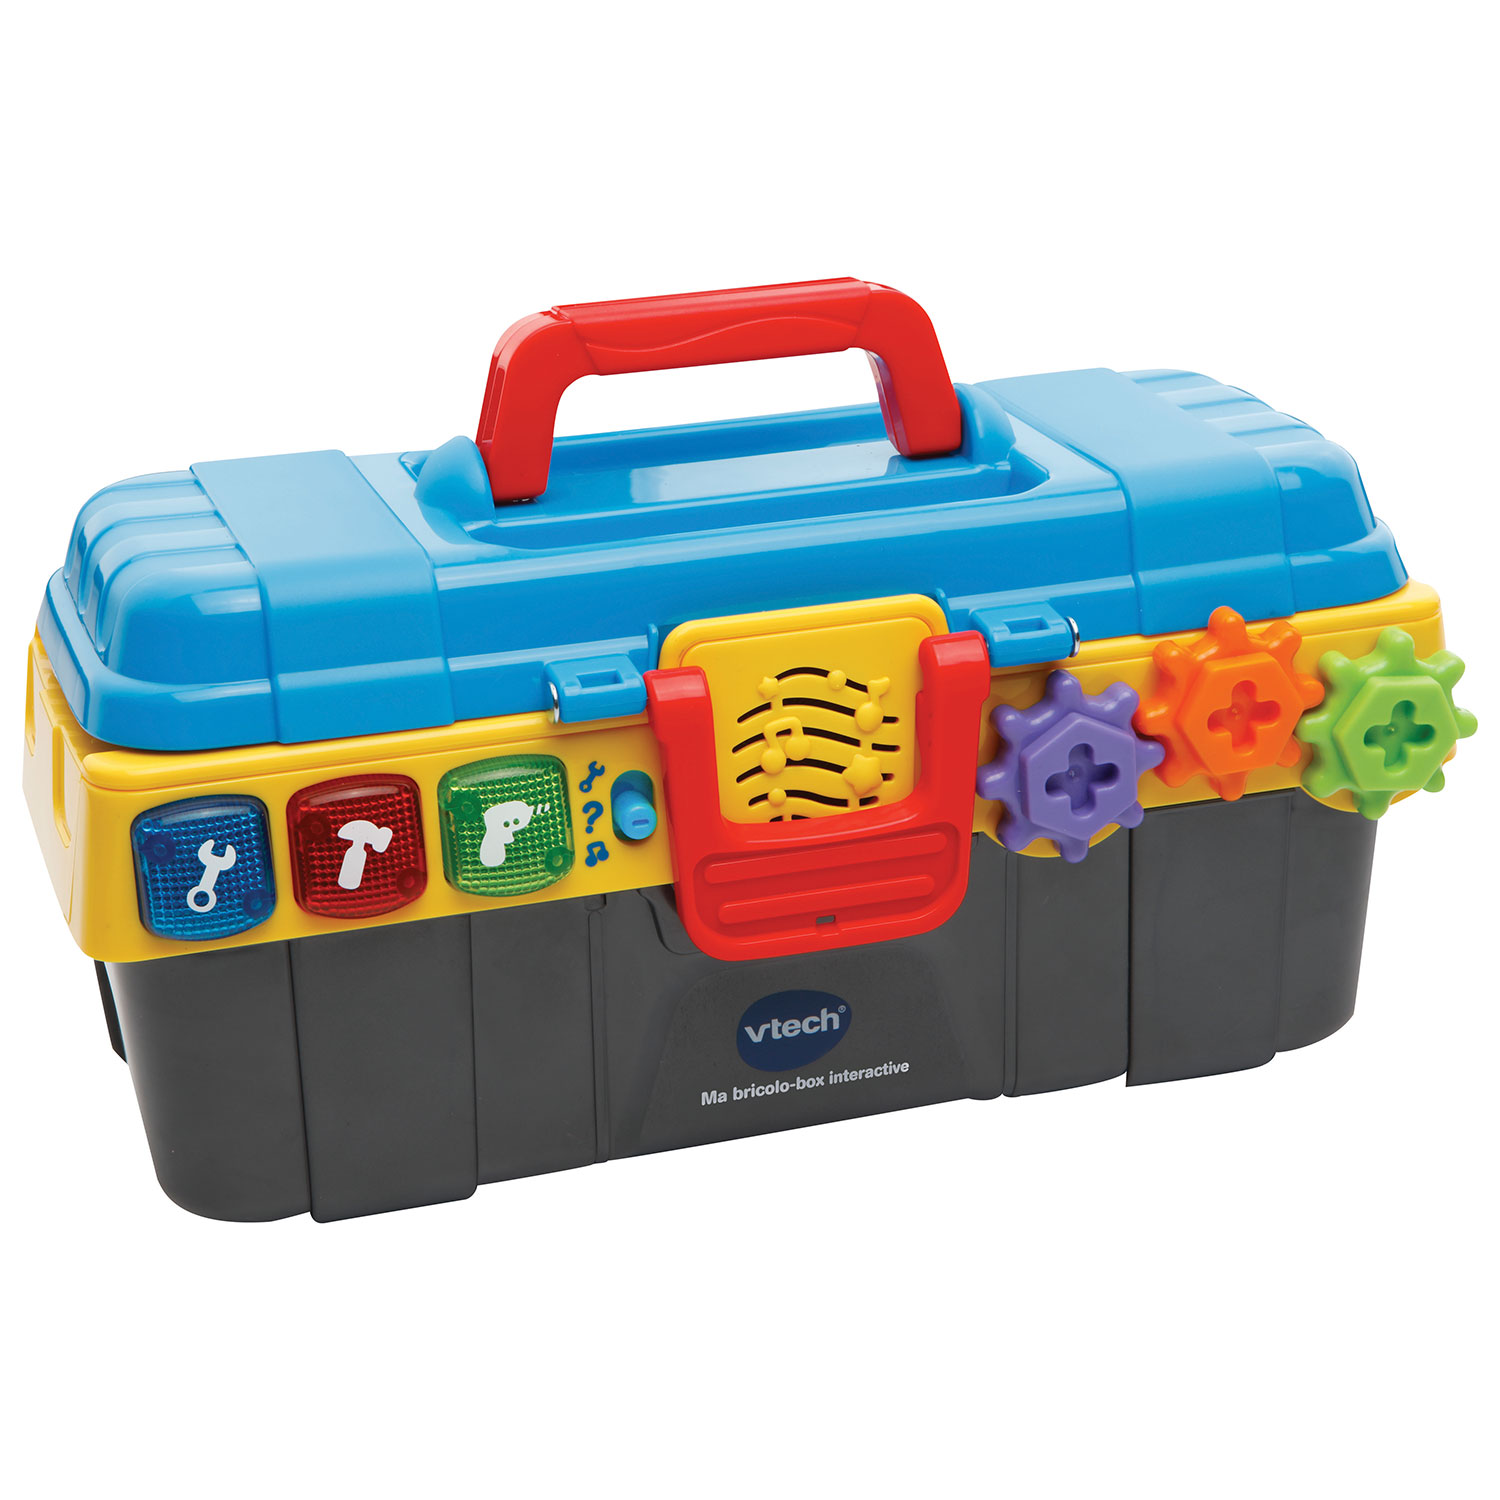 Ma bricolo-box interactive de VTech